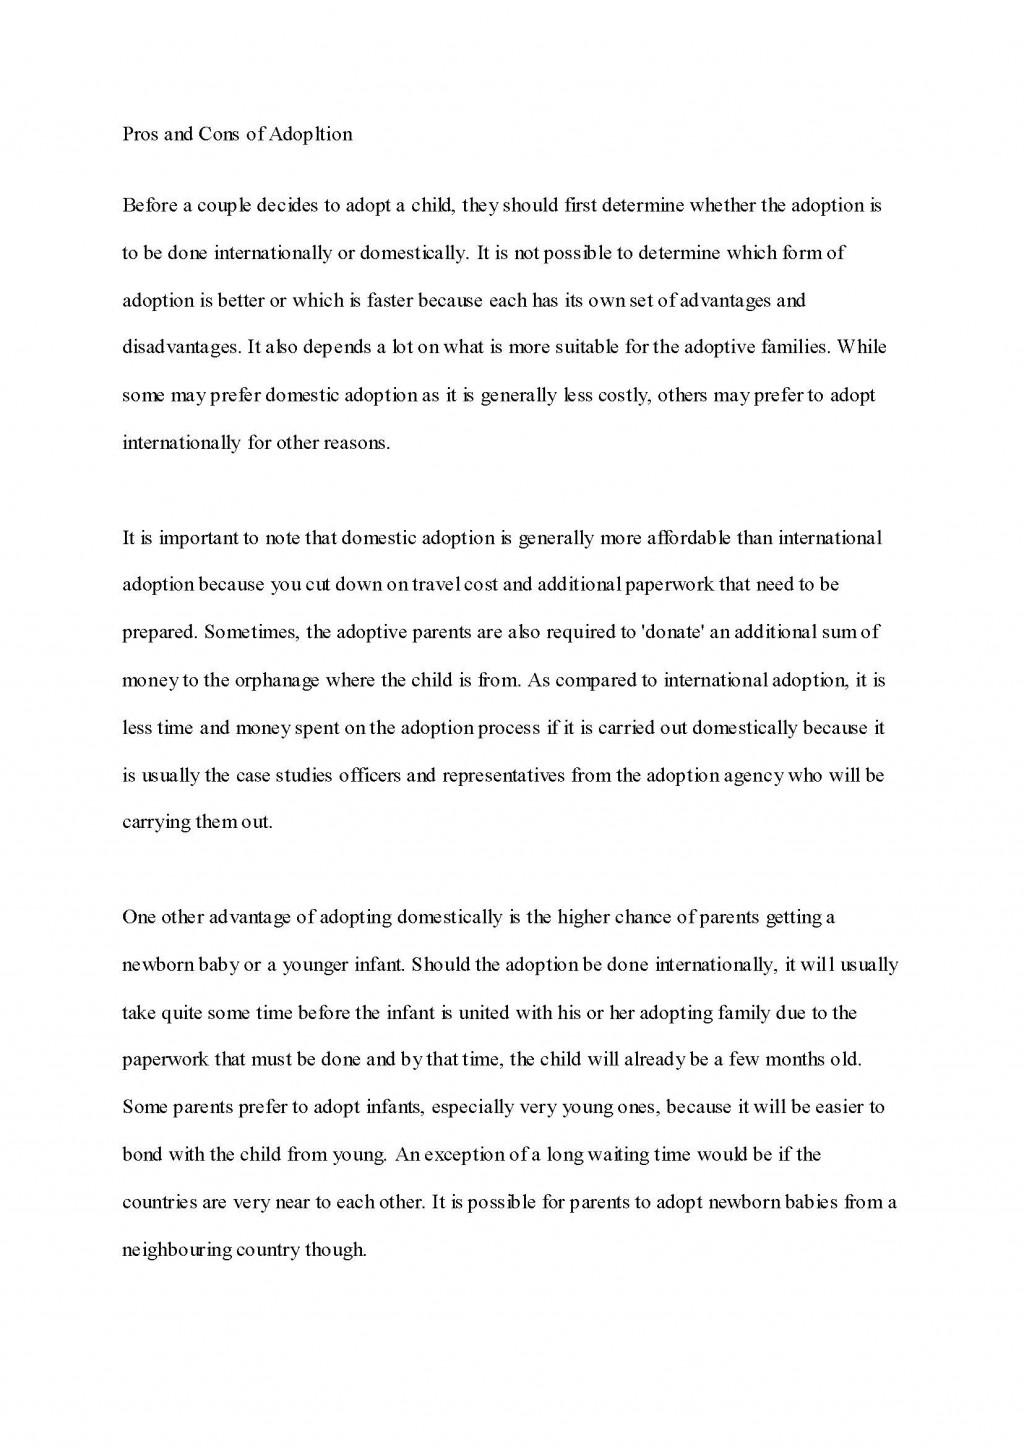 009 Death Penalty Research Paper Exceptional Conclusion Large